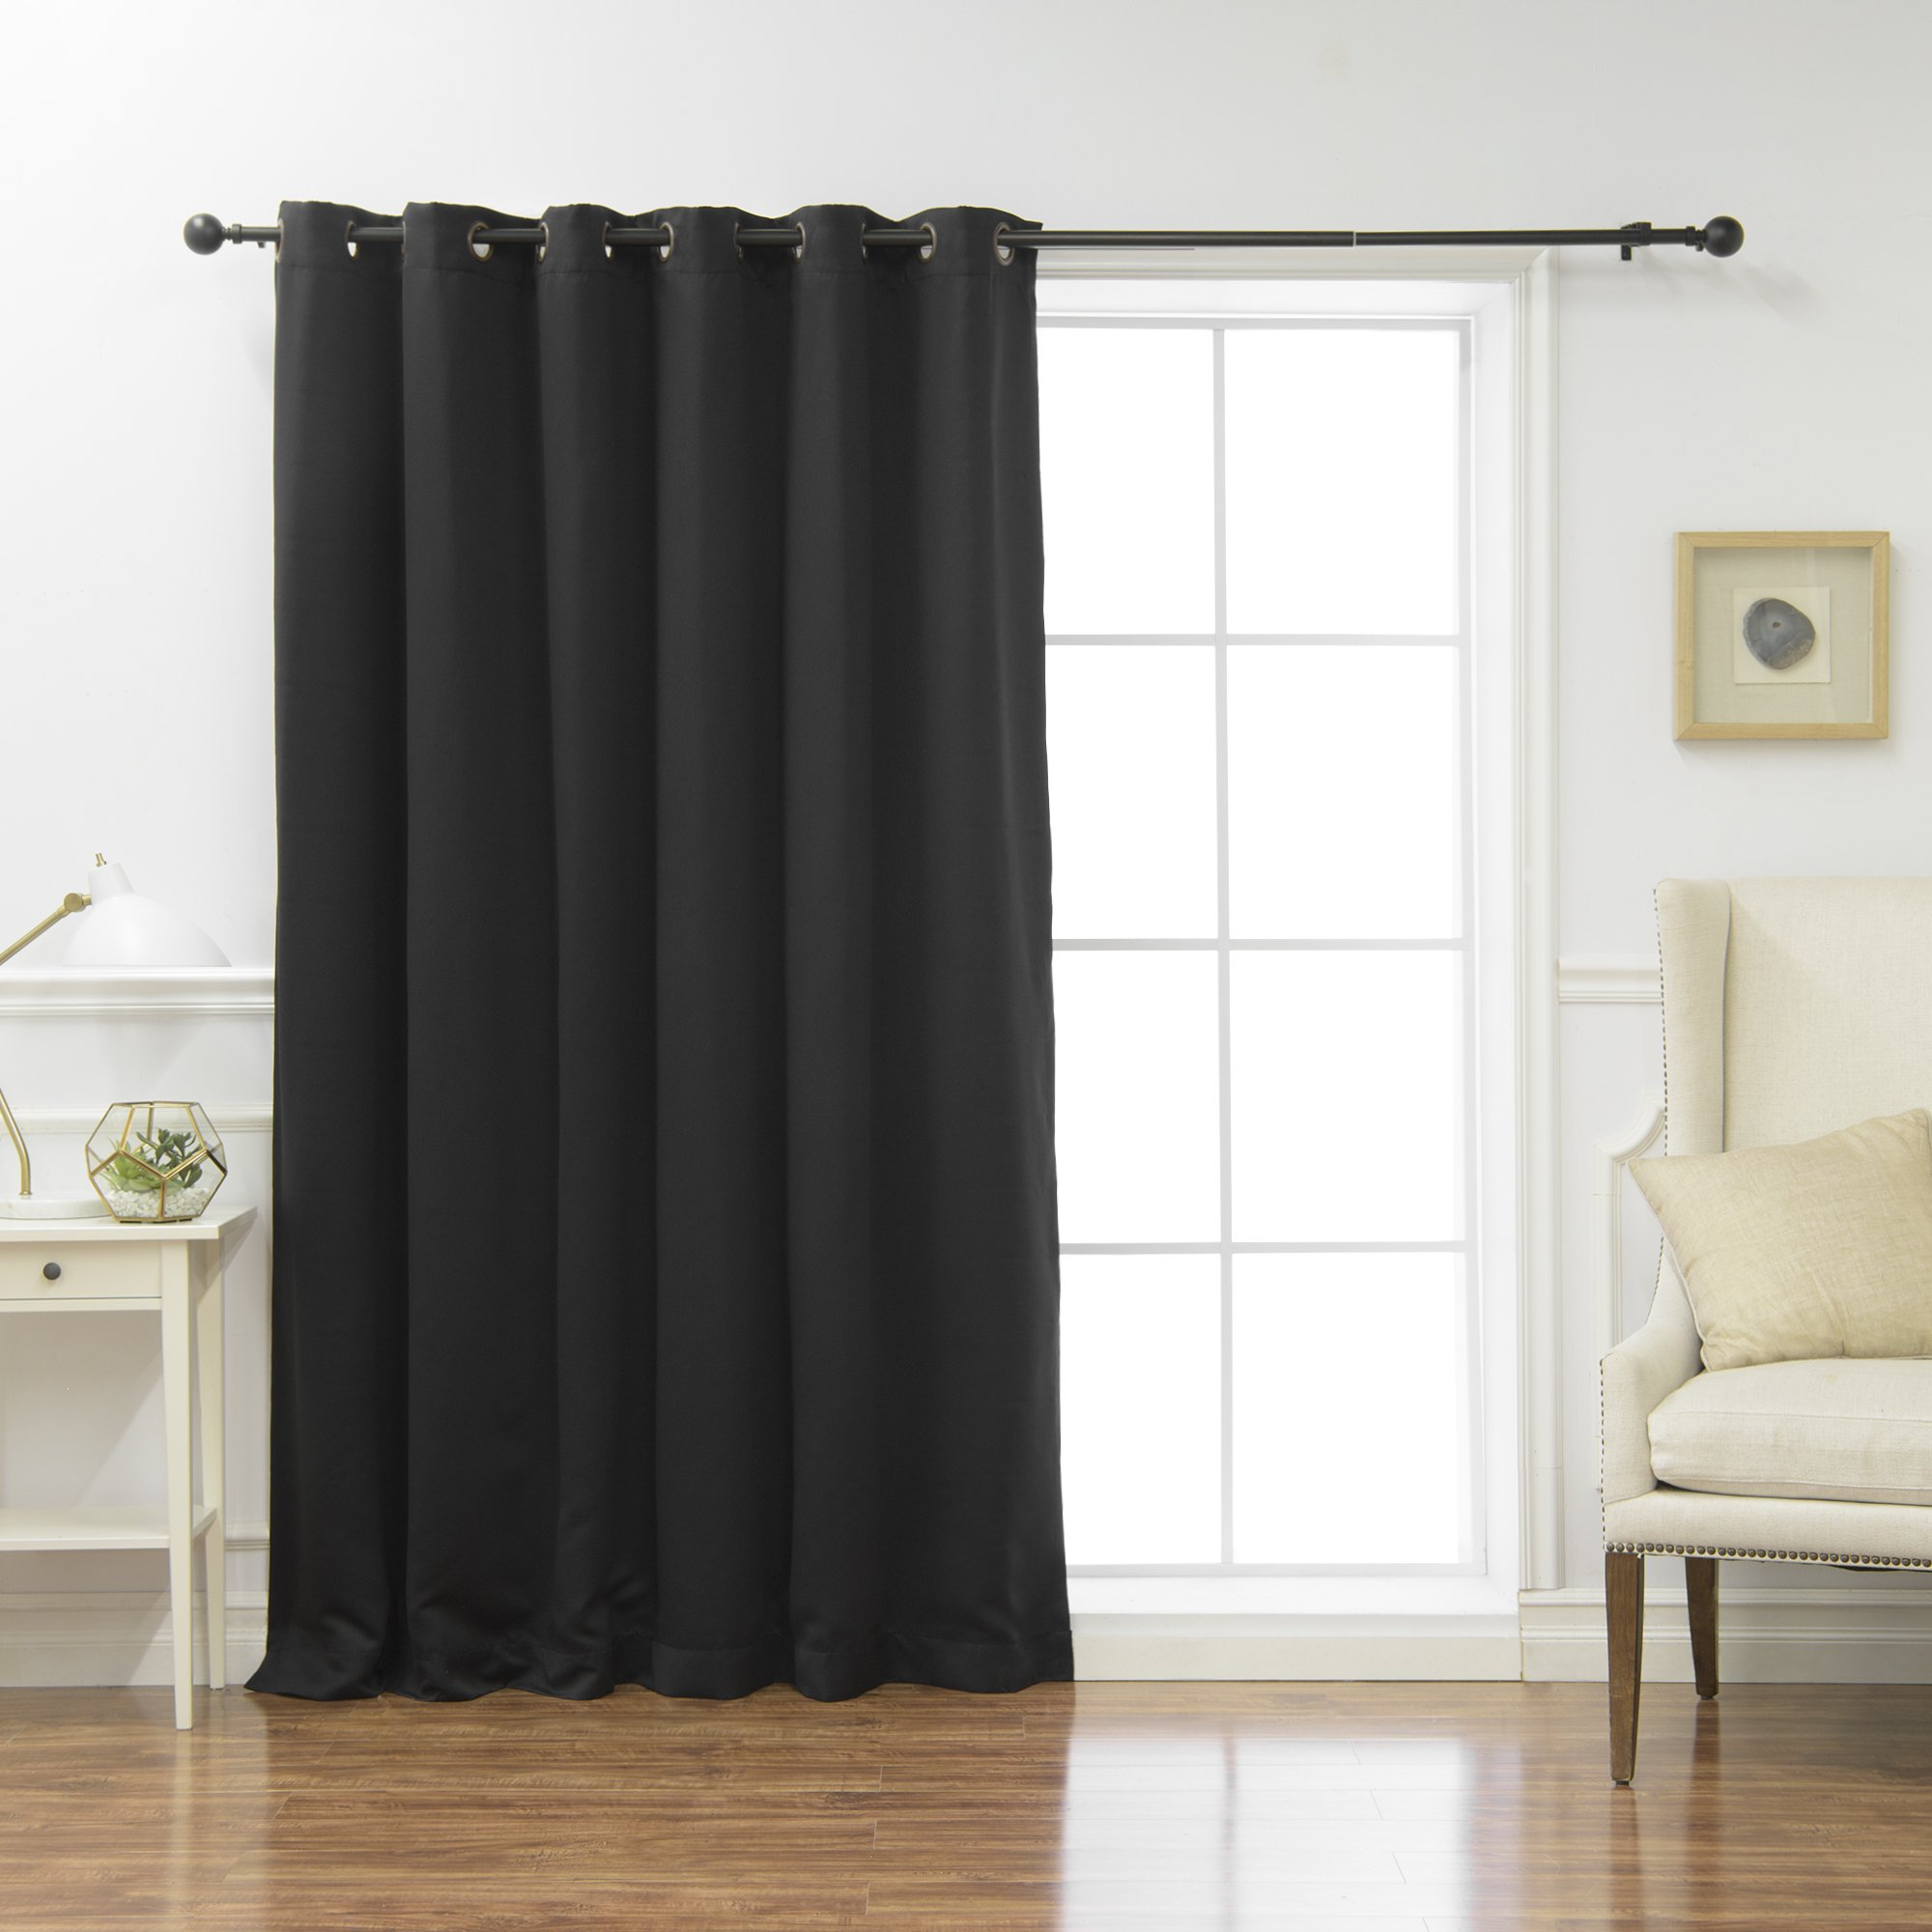 Best Home Fashion Wide Width Thermal Insulated Blackout Curtain - Antique Bronze Grommet Top - Black - 80'' W x 108'' L - (1 Panel)